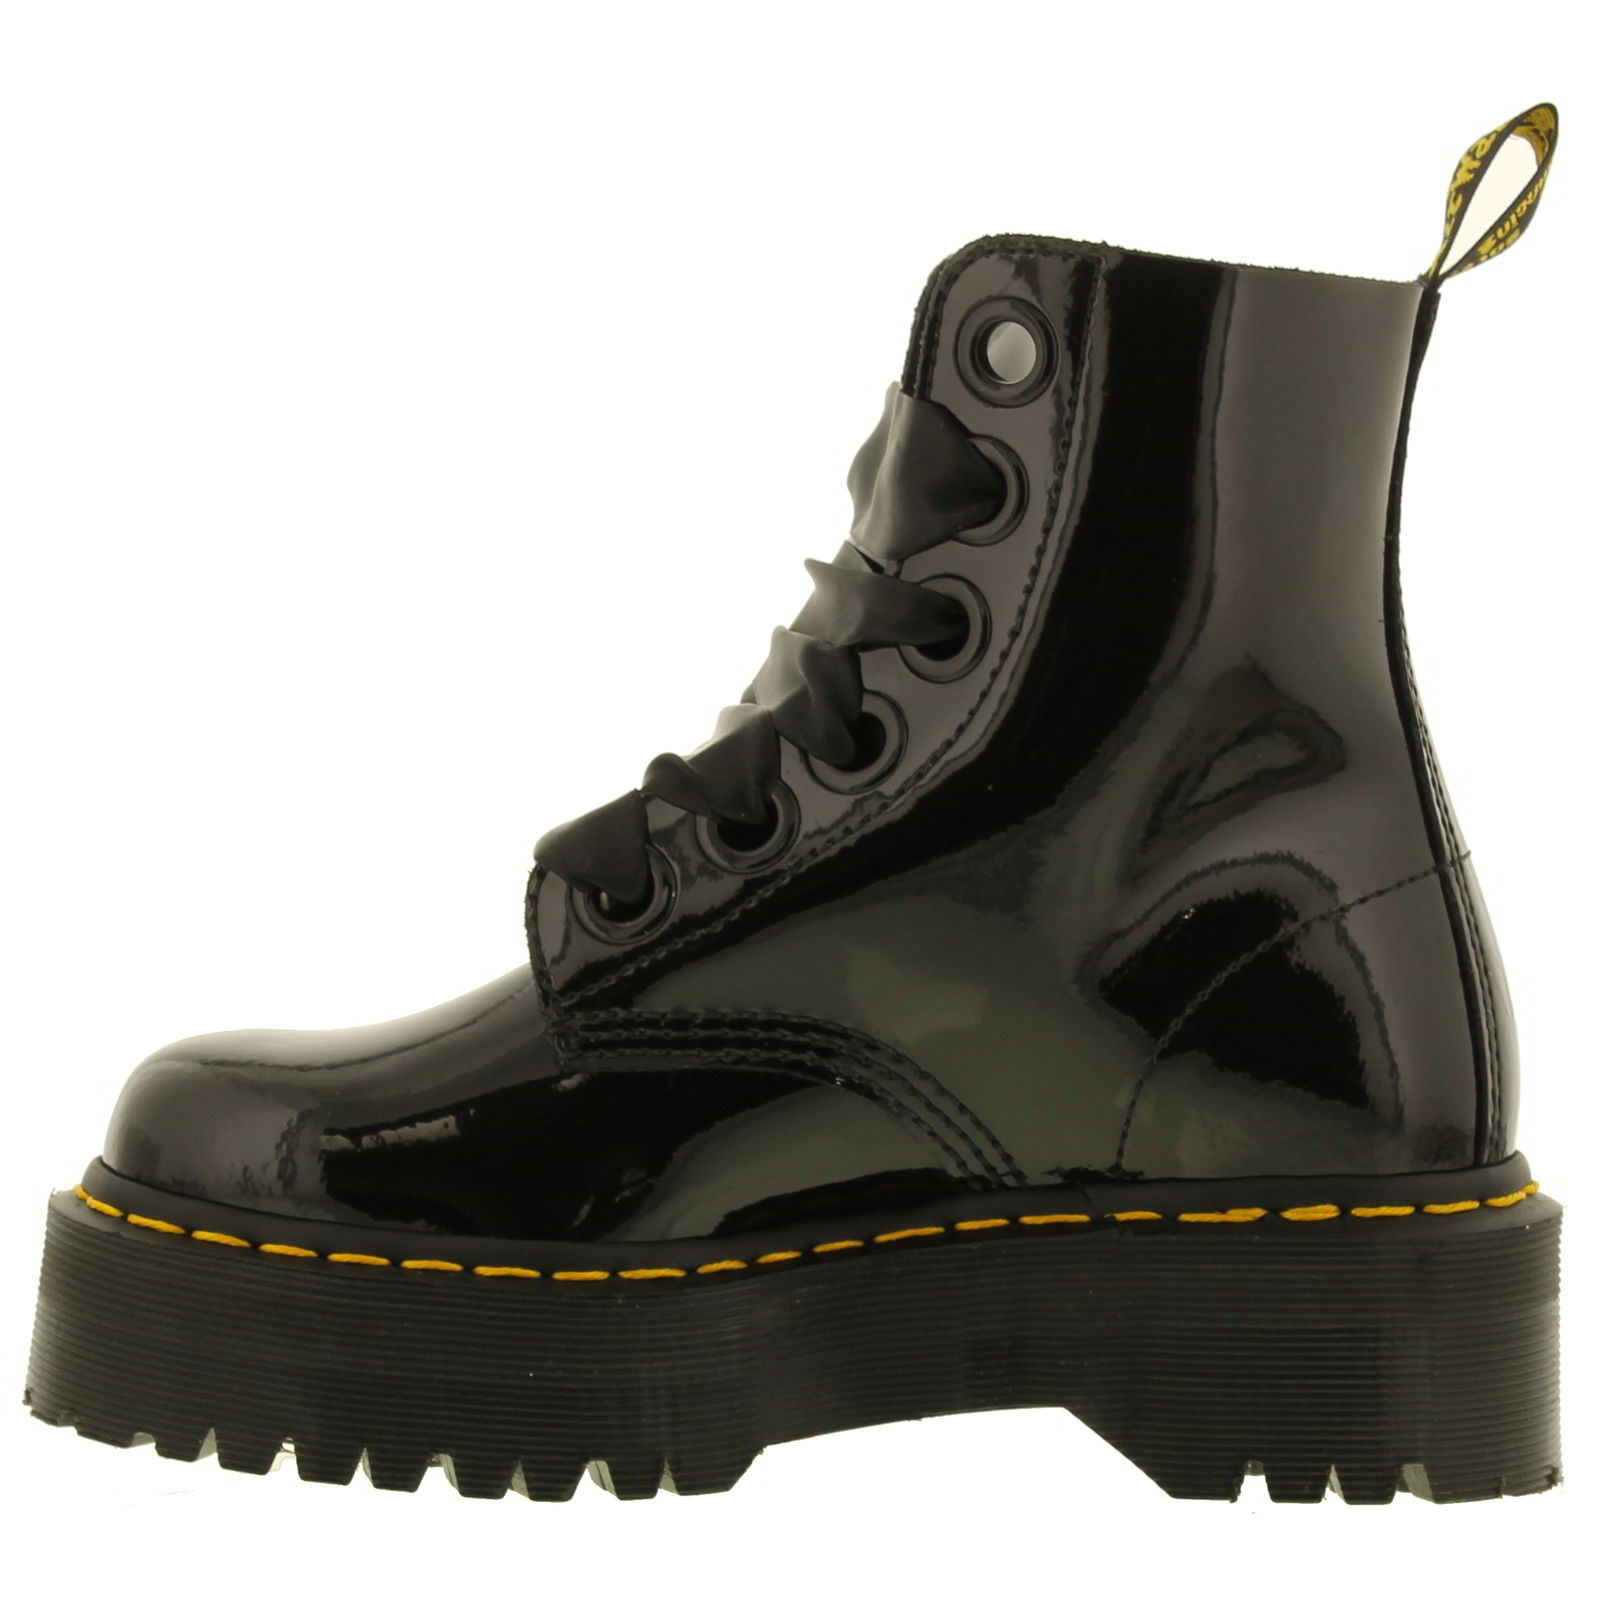 Dr martens molly femmes noir cuir verni plateforme cheville bottes taille 4 8 ebay - Cheville molly taille ...